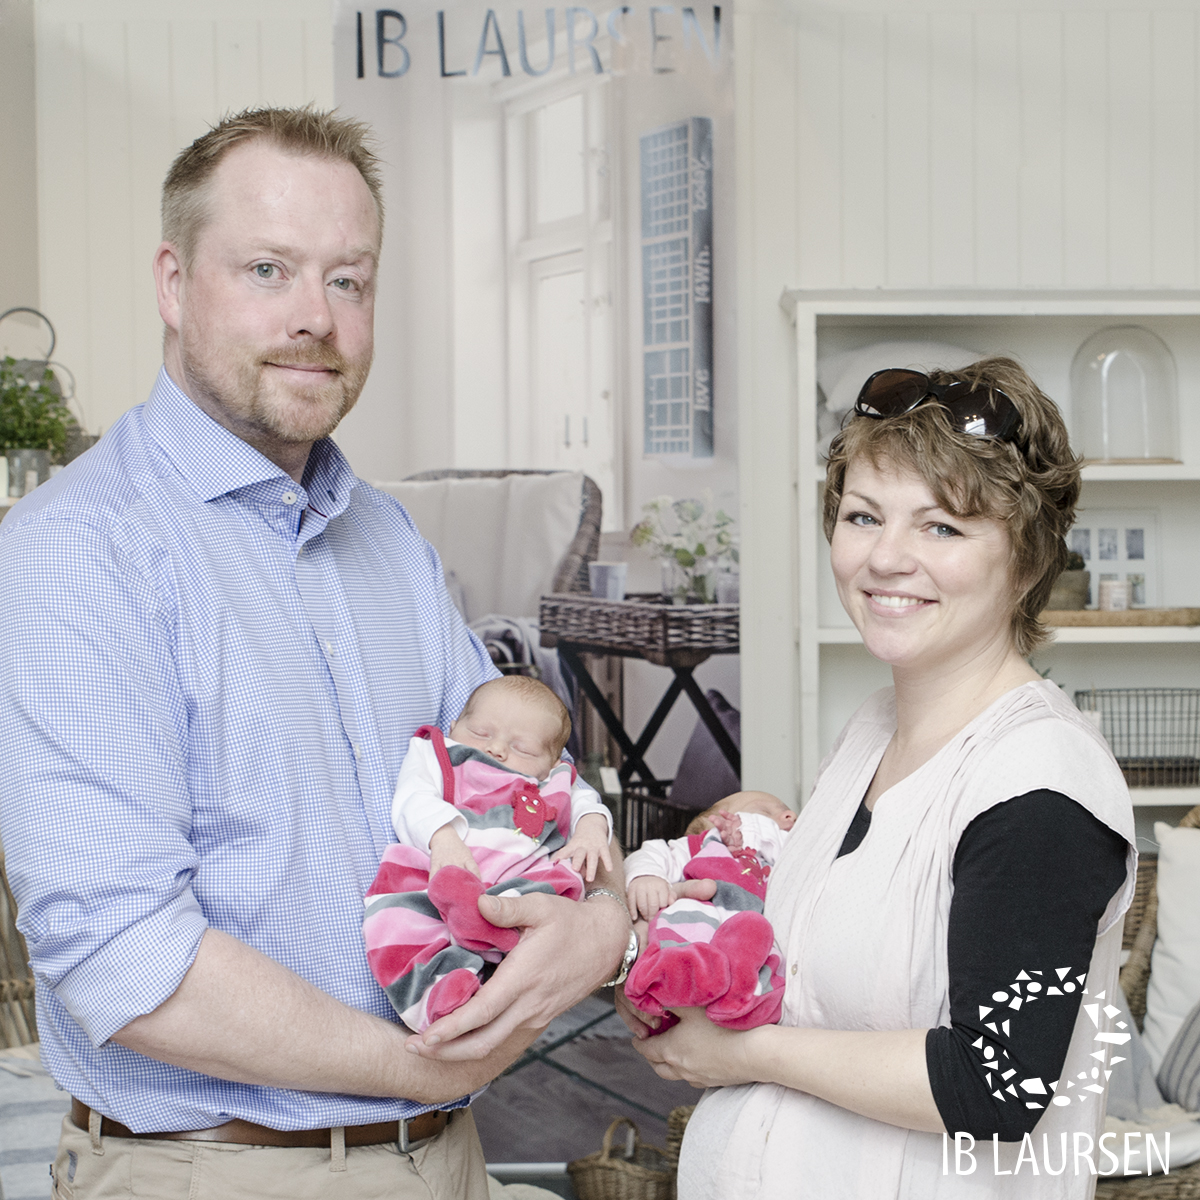 Pia & Peter Laursen with their baby twins Dagny & Anges. Photo: Ib Laursen